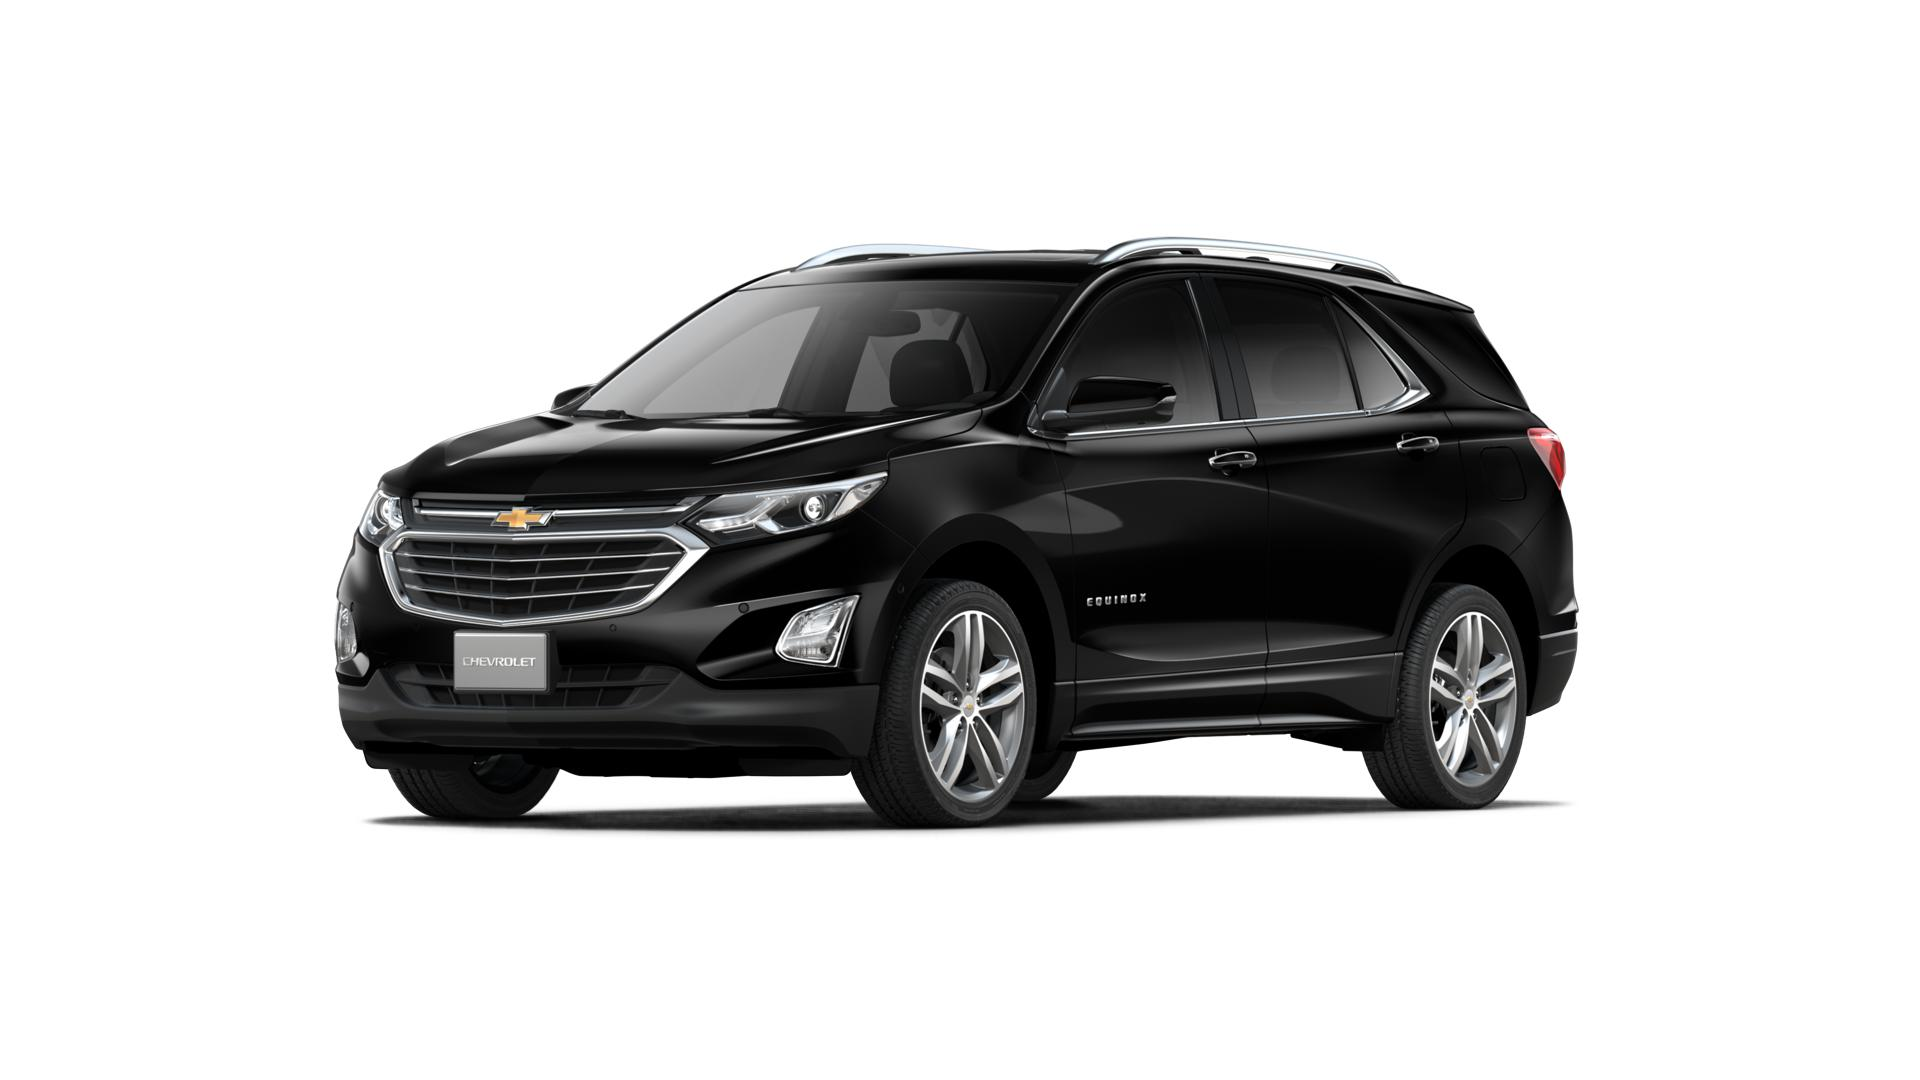 CHEVROLET EQUINOX PREMIER 2.0L TURBO 2019